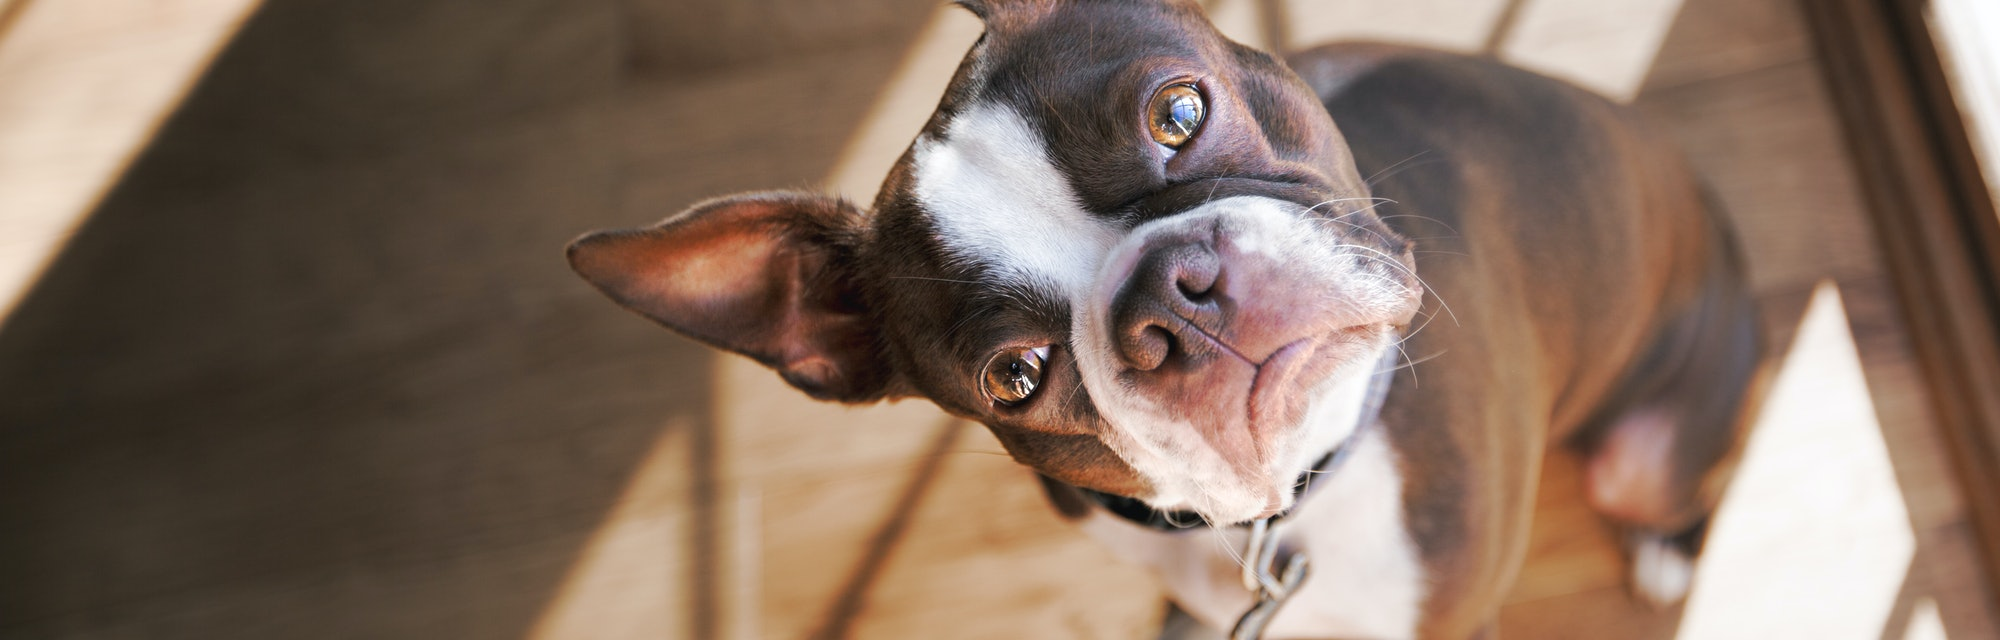 Boston Terrier dog with head tilted.